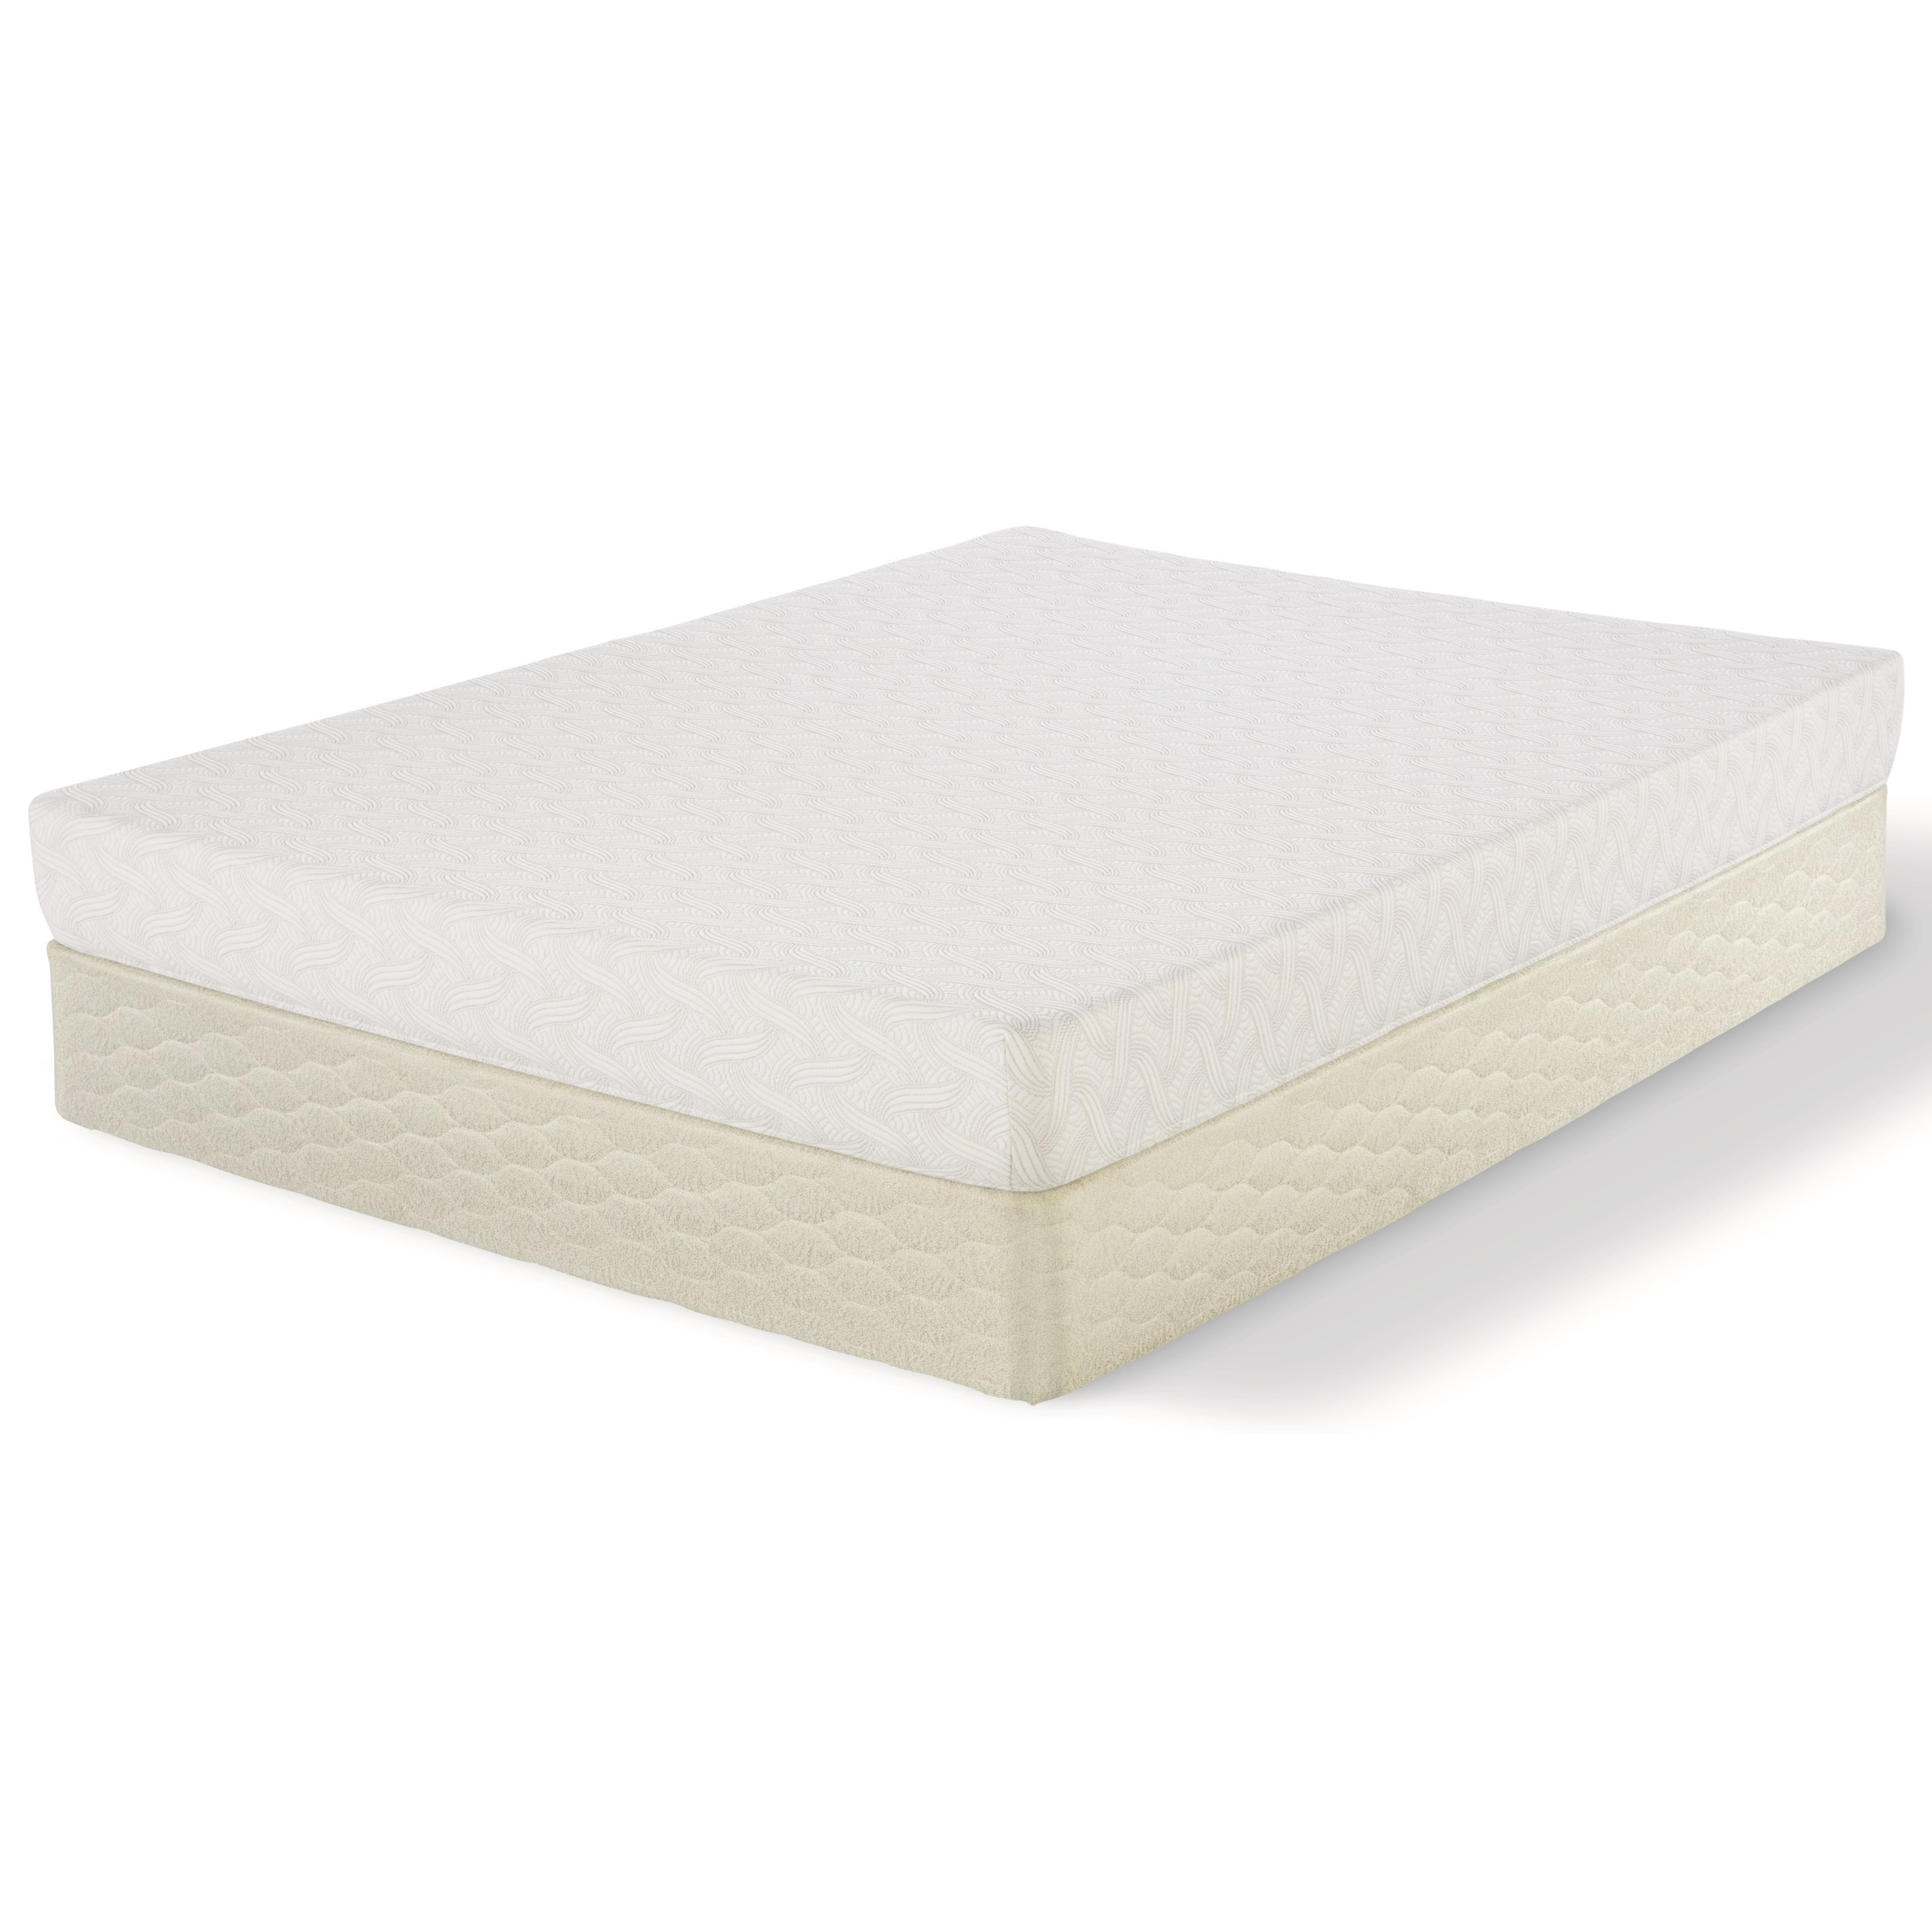 "Serta Feilding Queen 7"" Memory Foam Mattress Set - Item Number: 500573287-1050+500117399-5050"